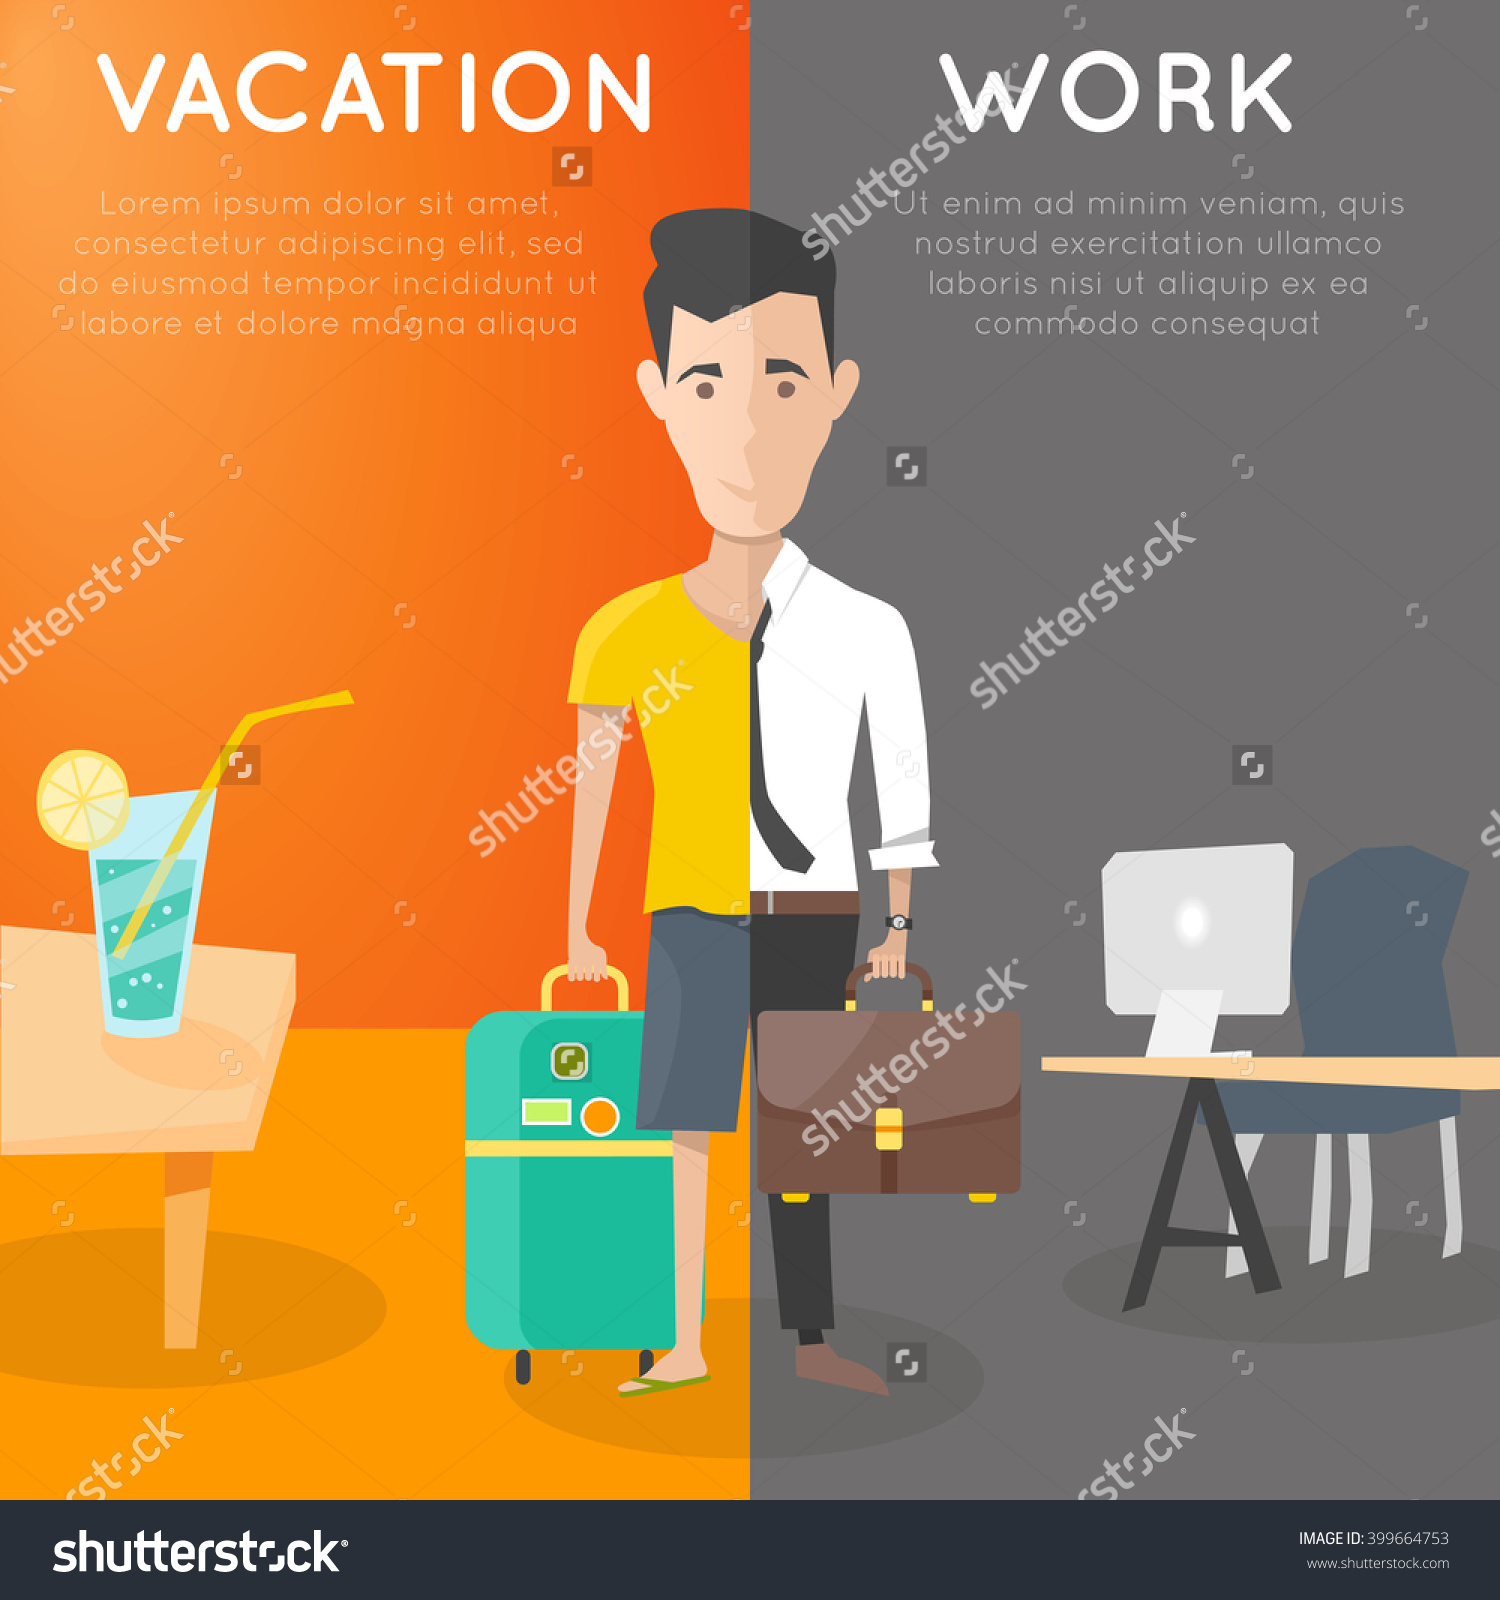 Vacation from work clipart clip art free library Vacation from work clipart - ClipartFest clip art free library